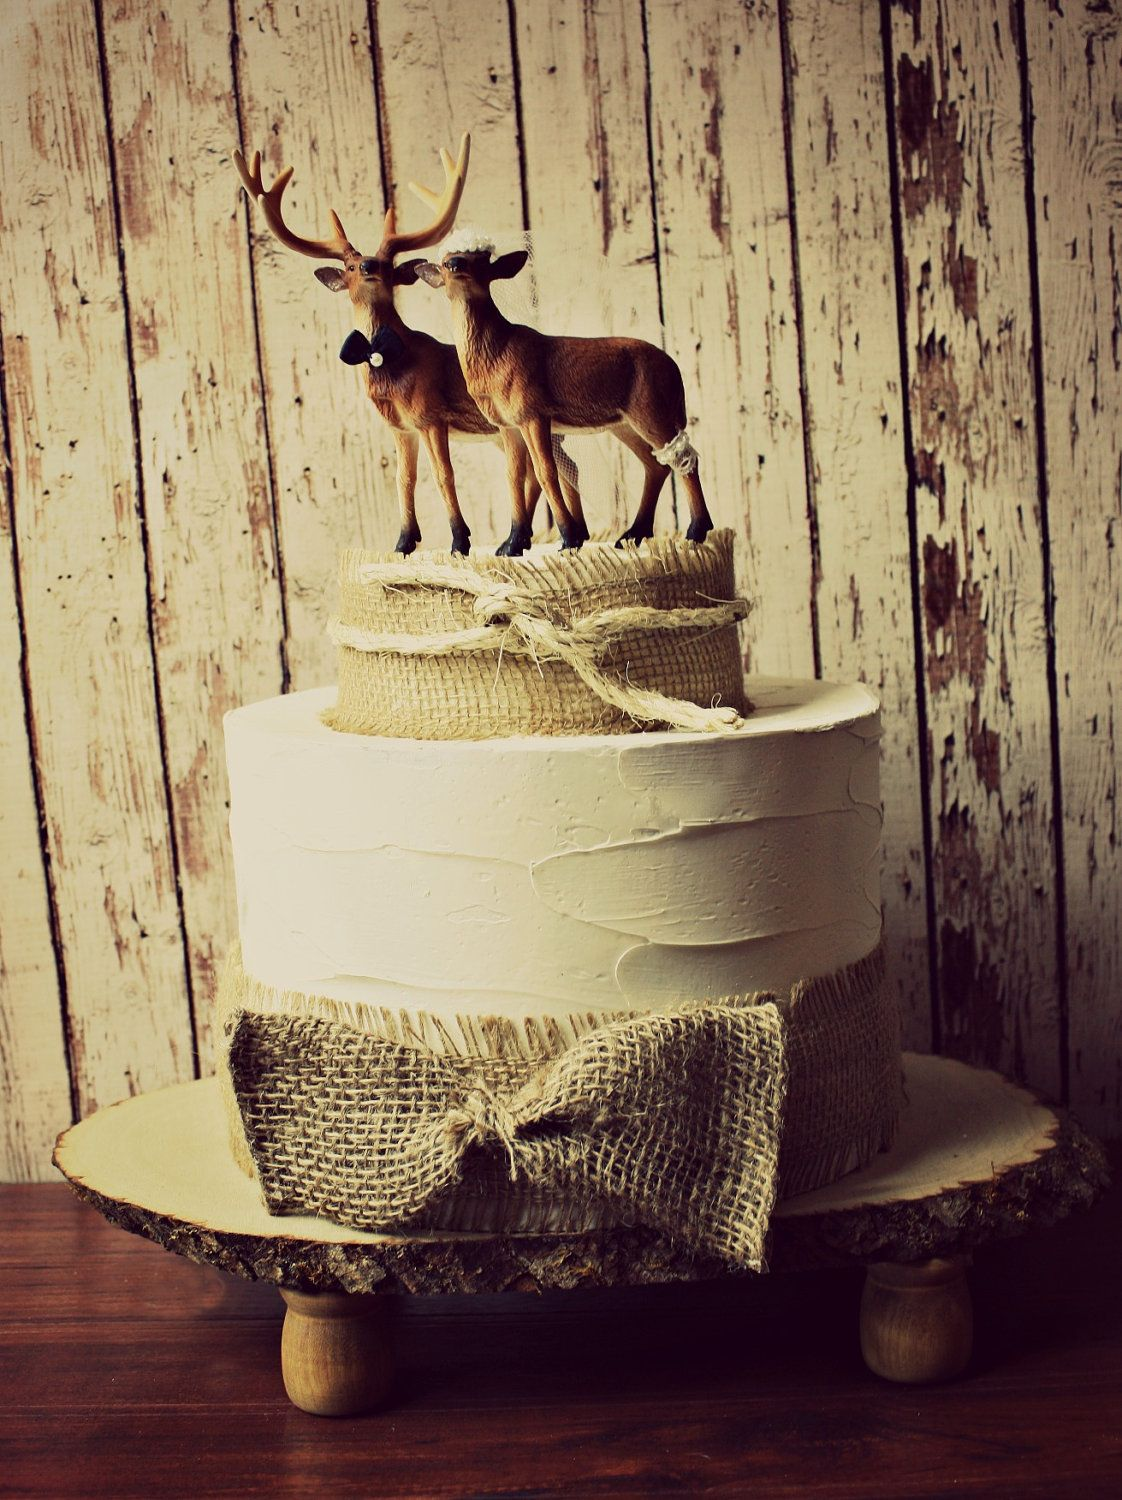 Deer wedding cake topperhunting wedding cake topperdeer bride and